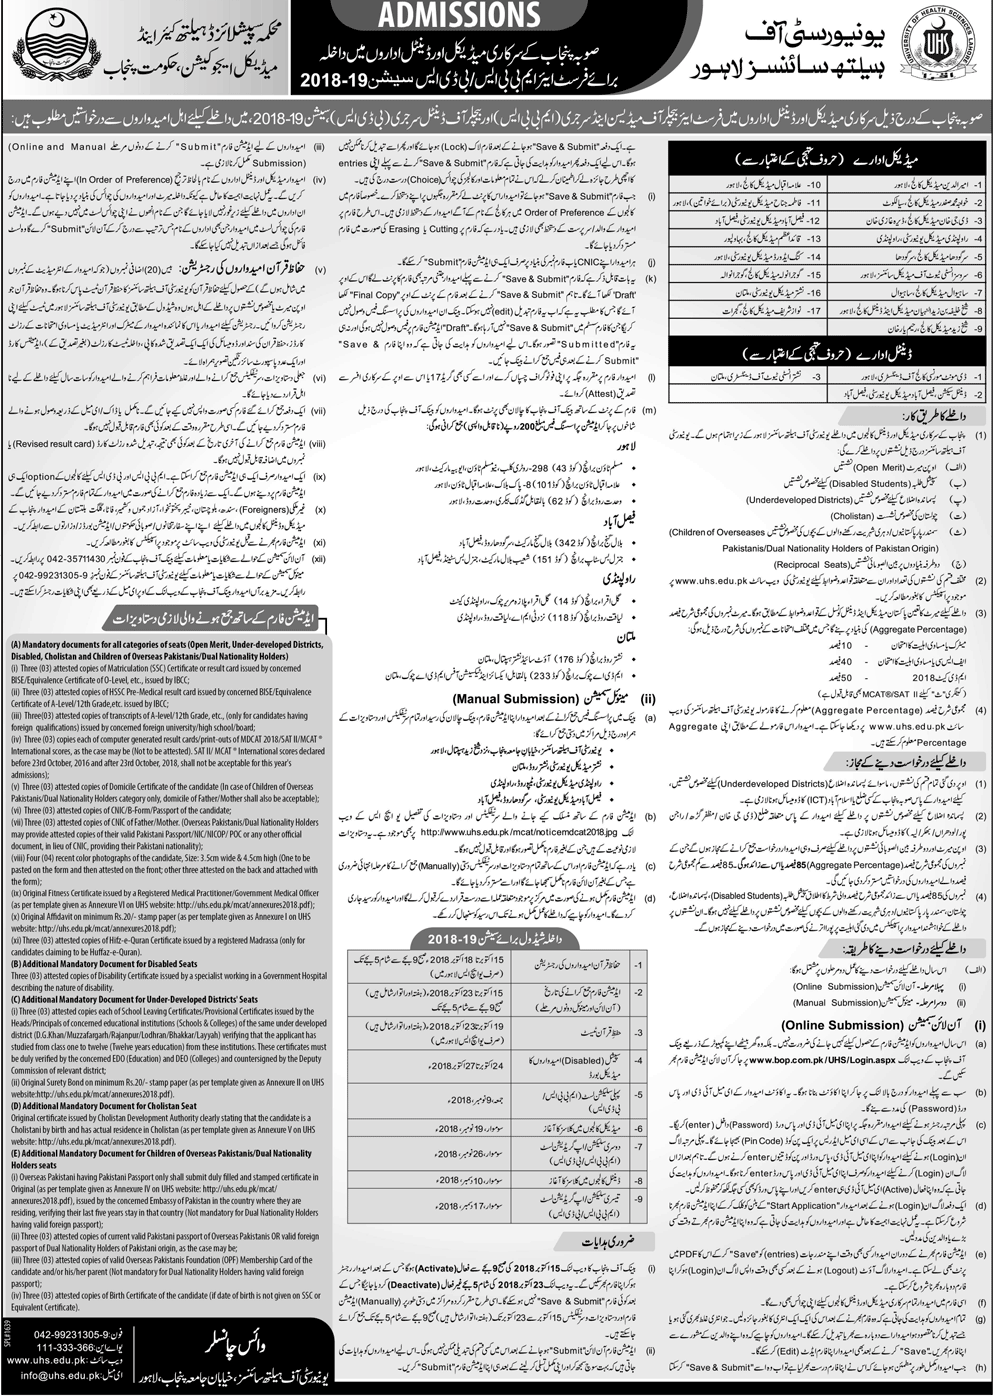 UHS Lahore MBBS & BDS Admission 2018 in Govt Medical Colleges